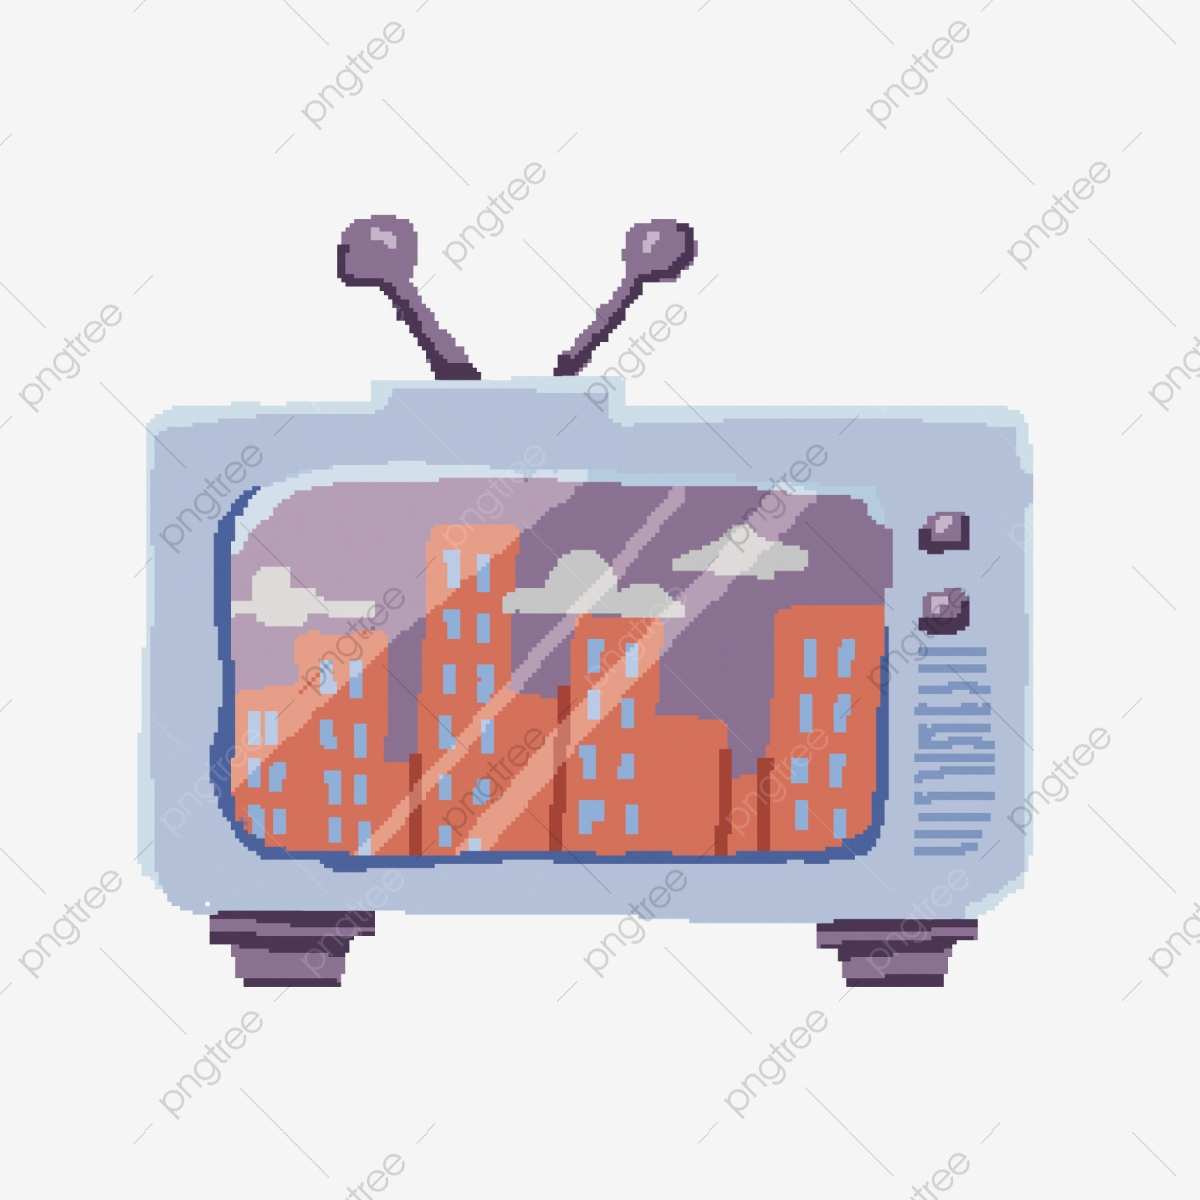 Hand-painted 80 Retro Cable Tv Pixelated Design, Hand